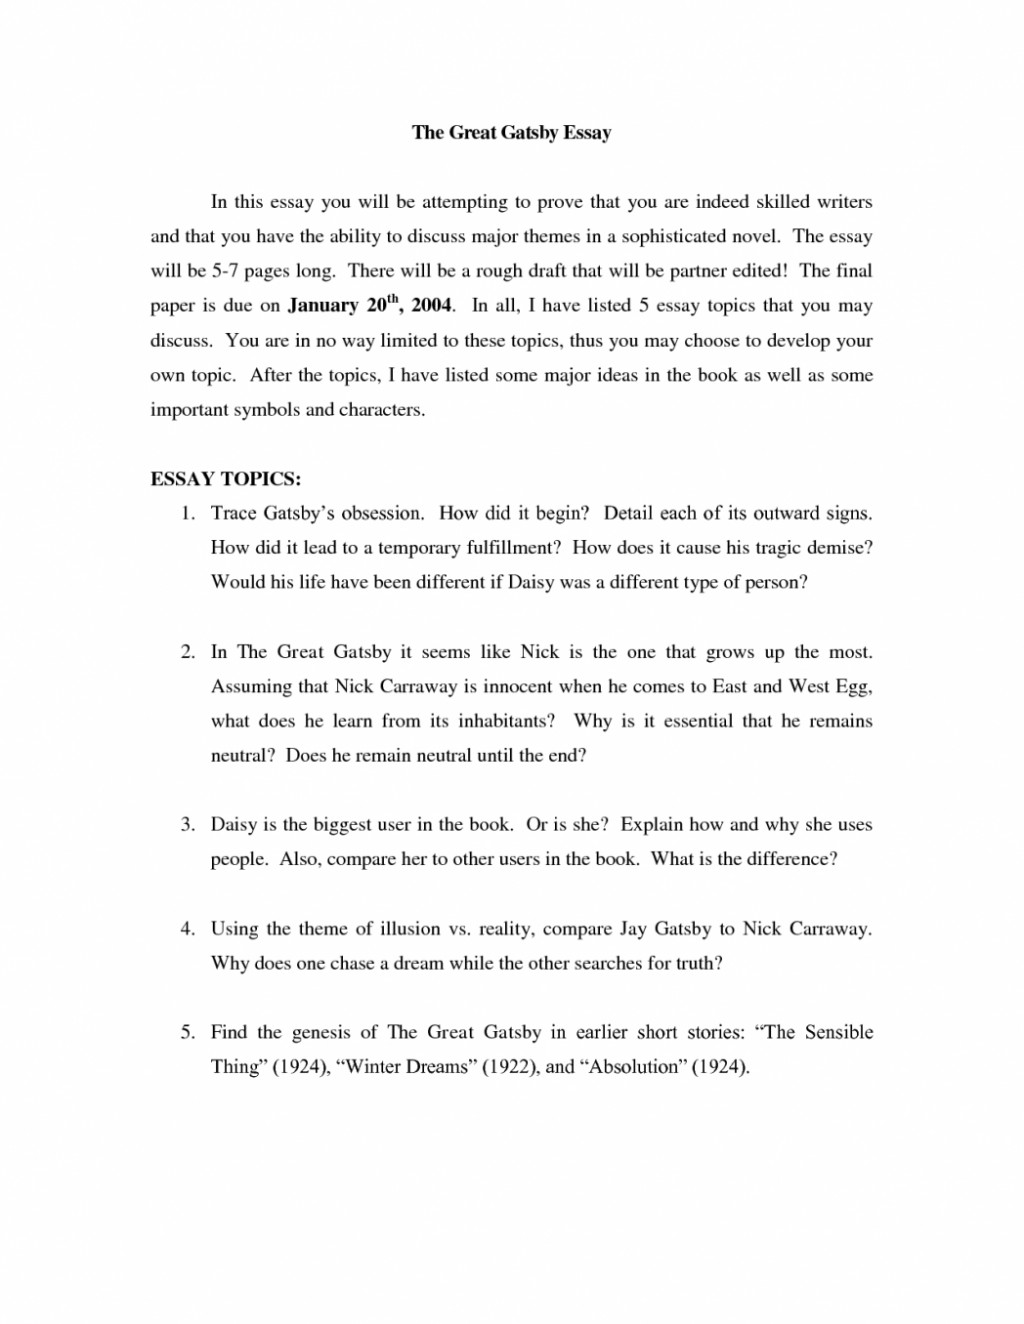 011 Argumentative Essay About Bullying Example Essays Onber Best English I Need An Trees Thesis Statement For The Great Gatsby Template 4ni Topics Persuasive Magnificent Should Be Avoided Brainly In Philippines Large